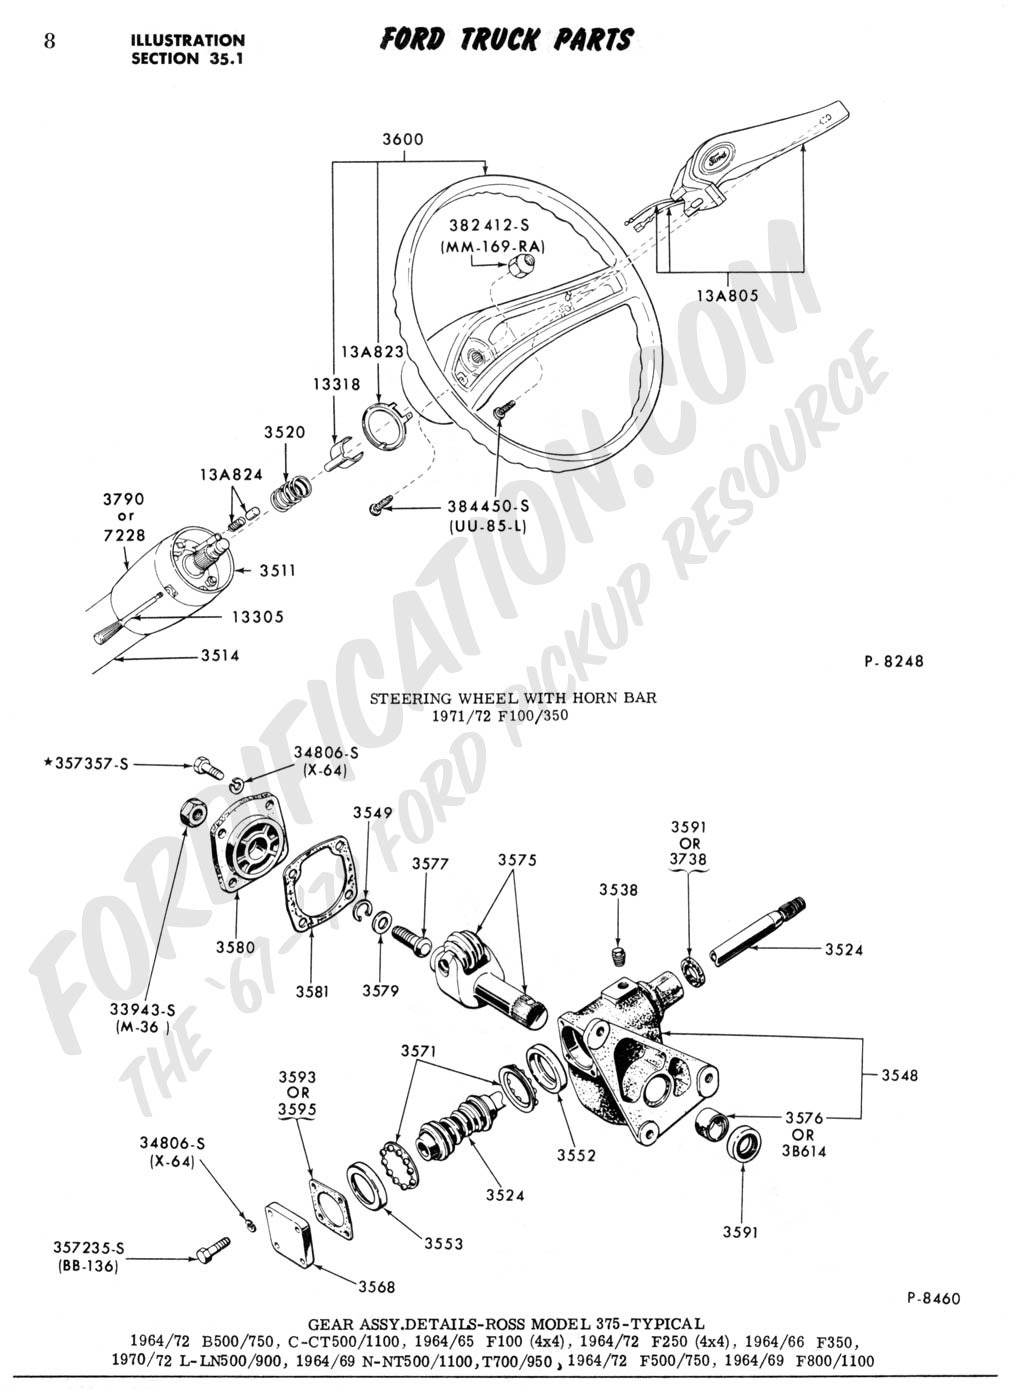 Wiring Diagram For Ford F100 The Ford Auto Wiring